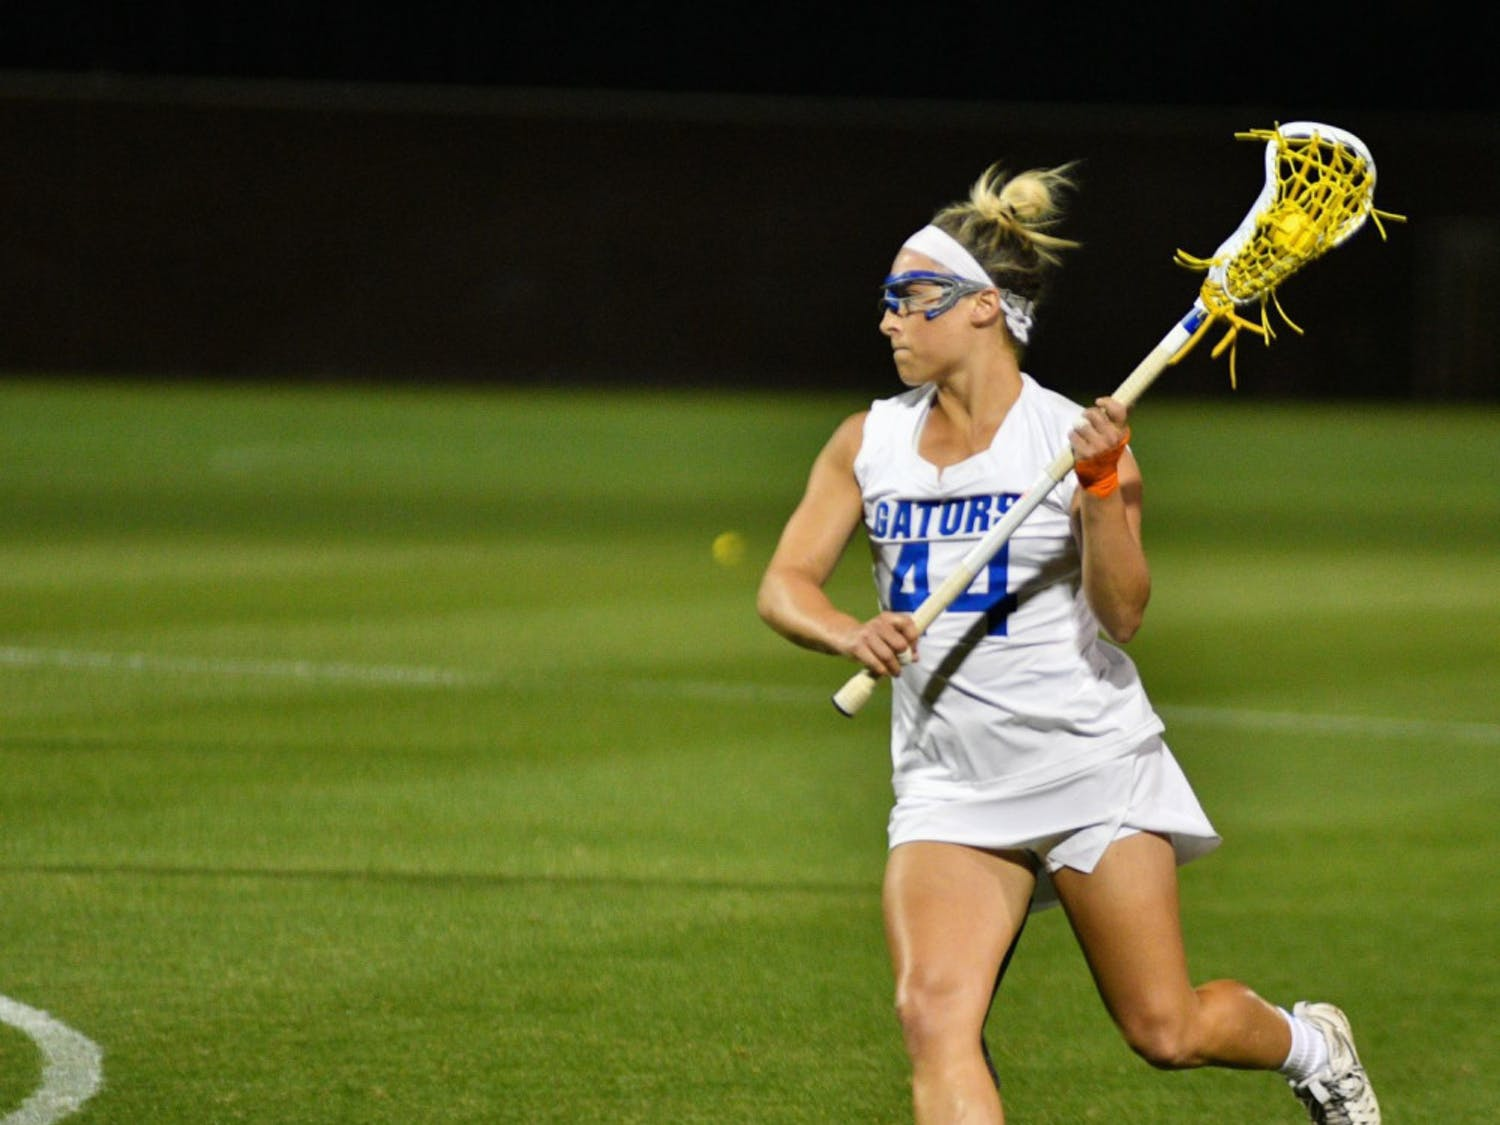 """Senior midfielder Sydney Pirreca was among several players who were held out against Syracuse on Wednesday for """"violating team rules,"""" according to coach Amanda O'Leary."""